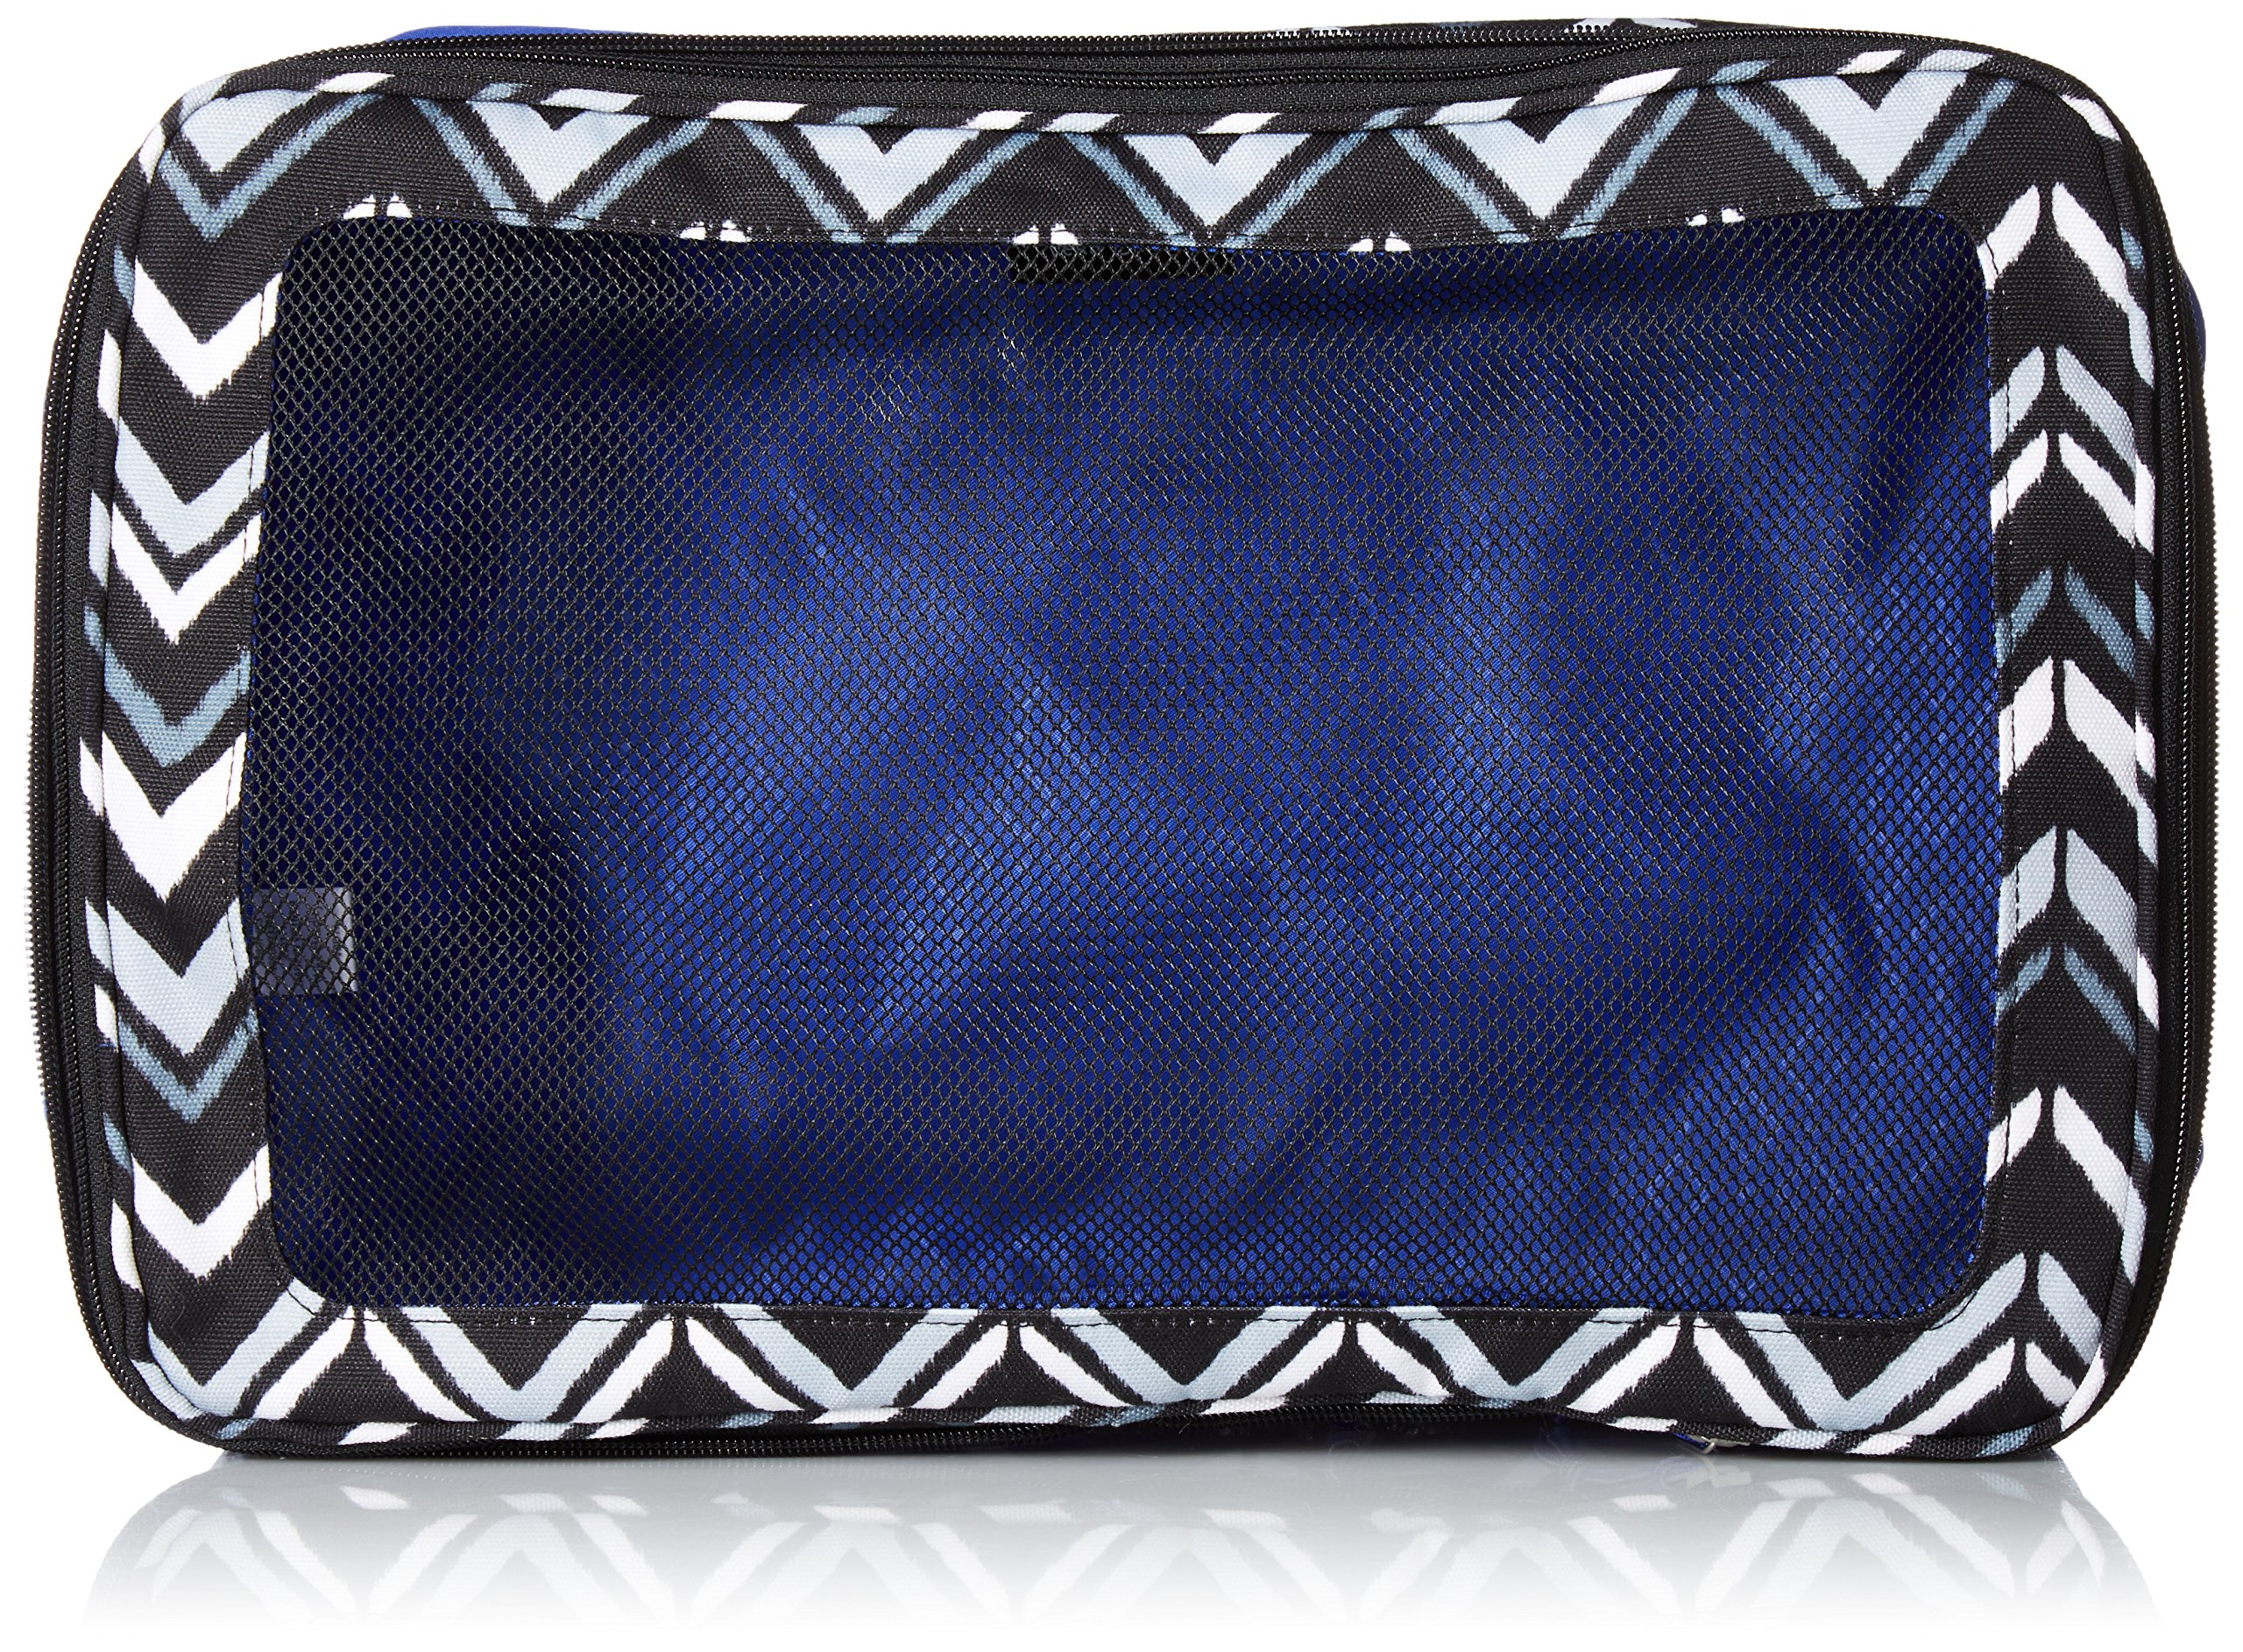 Vera Bradley Lighten up Large Expandable Packing Cube, Polyester, Lotus Chevron